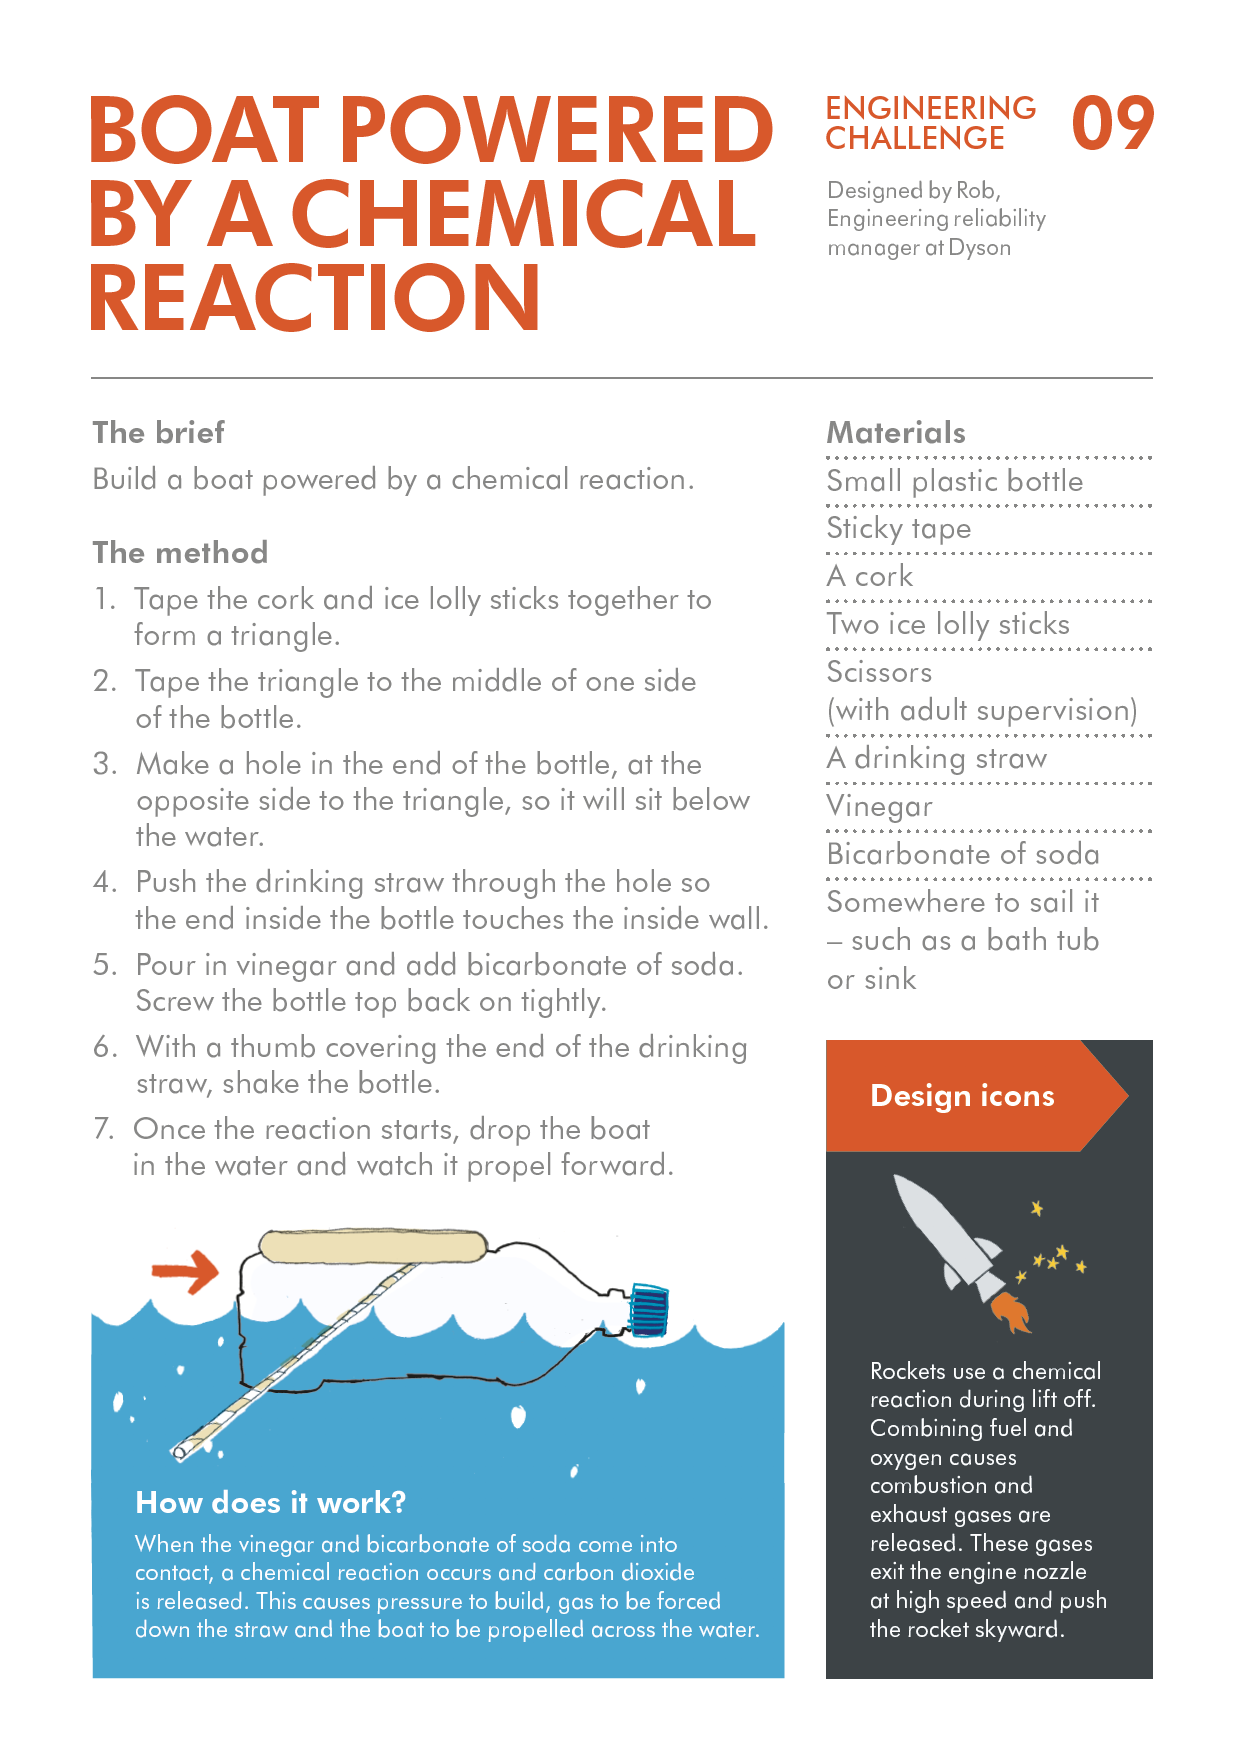 Just Like Rockets Boats Can Be Powered By Chemical Reactions Make Your Own Chemically Powe Science Activities For Kids Business For Kids Chemical Reactions